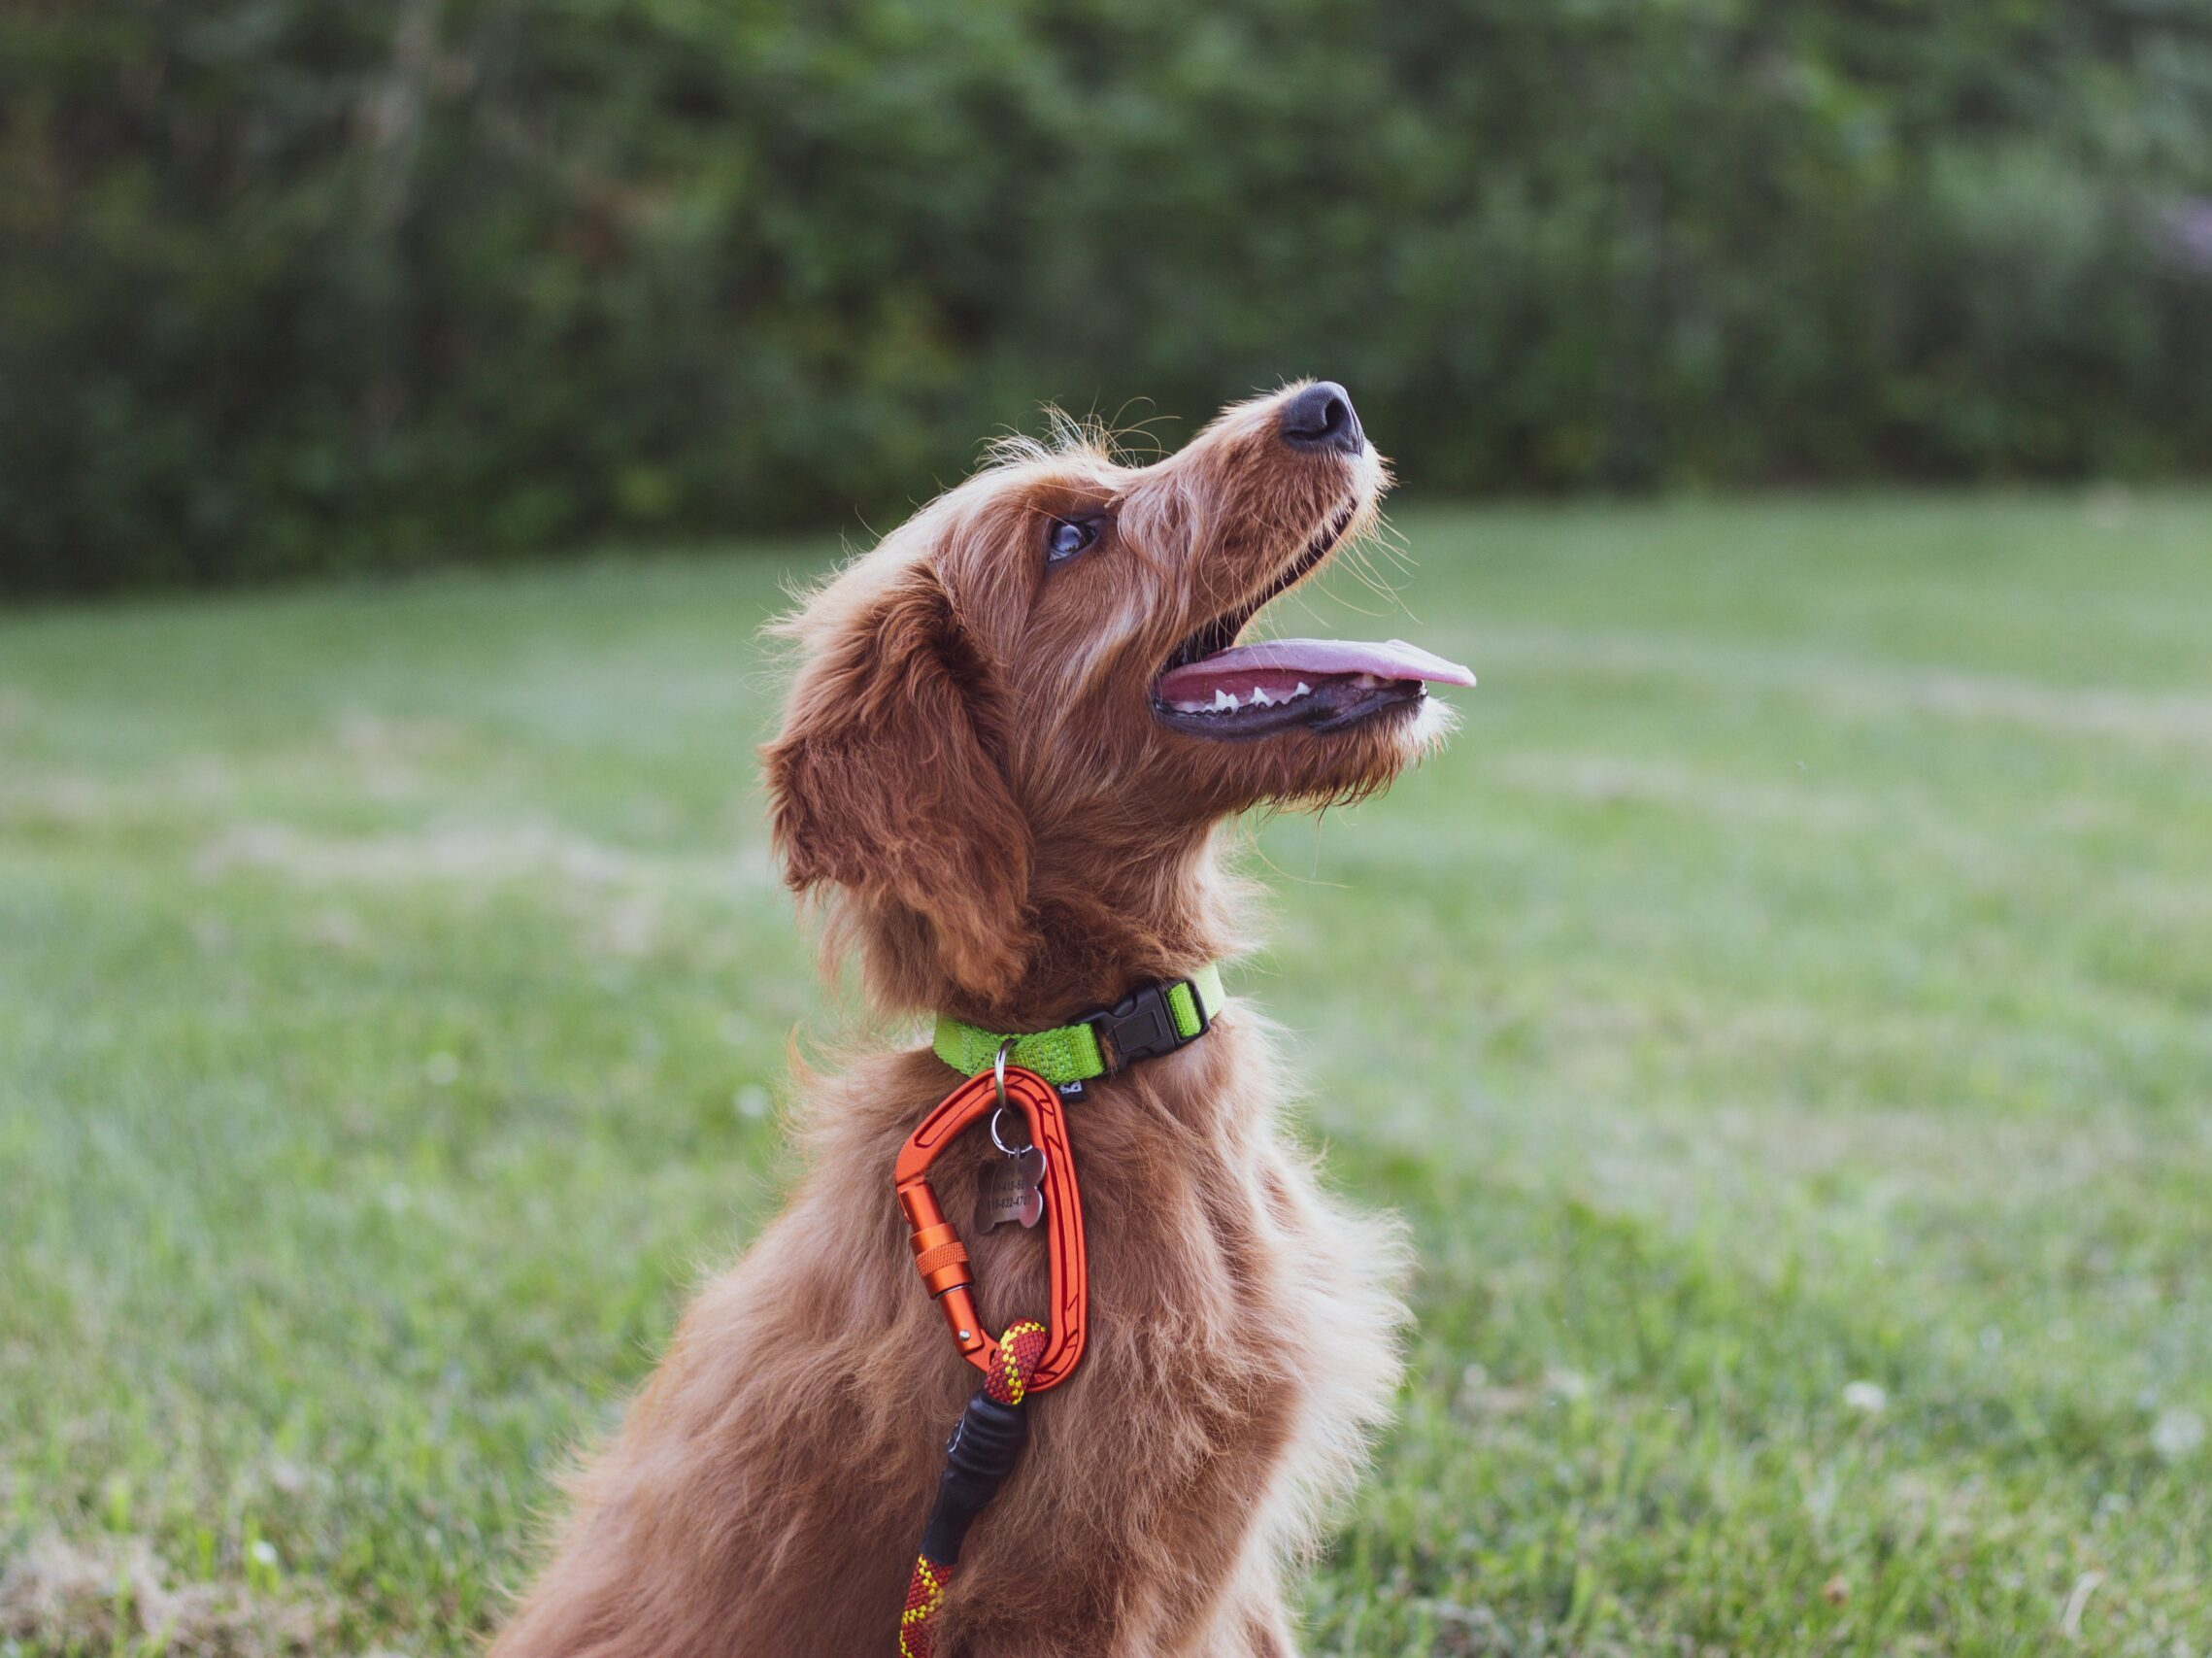 short-coated tan dog sits in green grass field during daytime